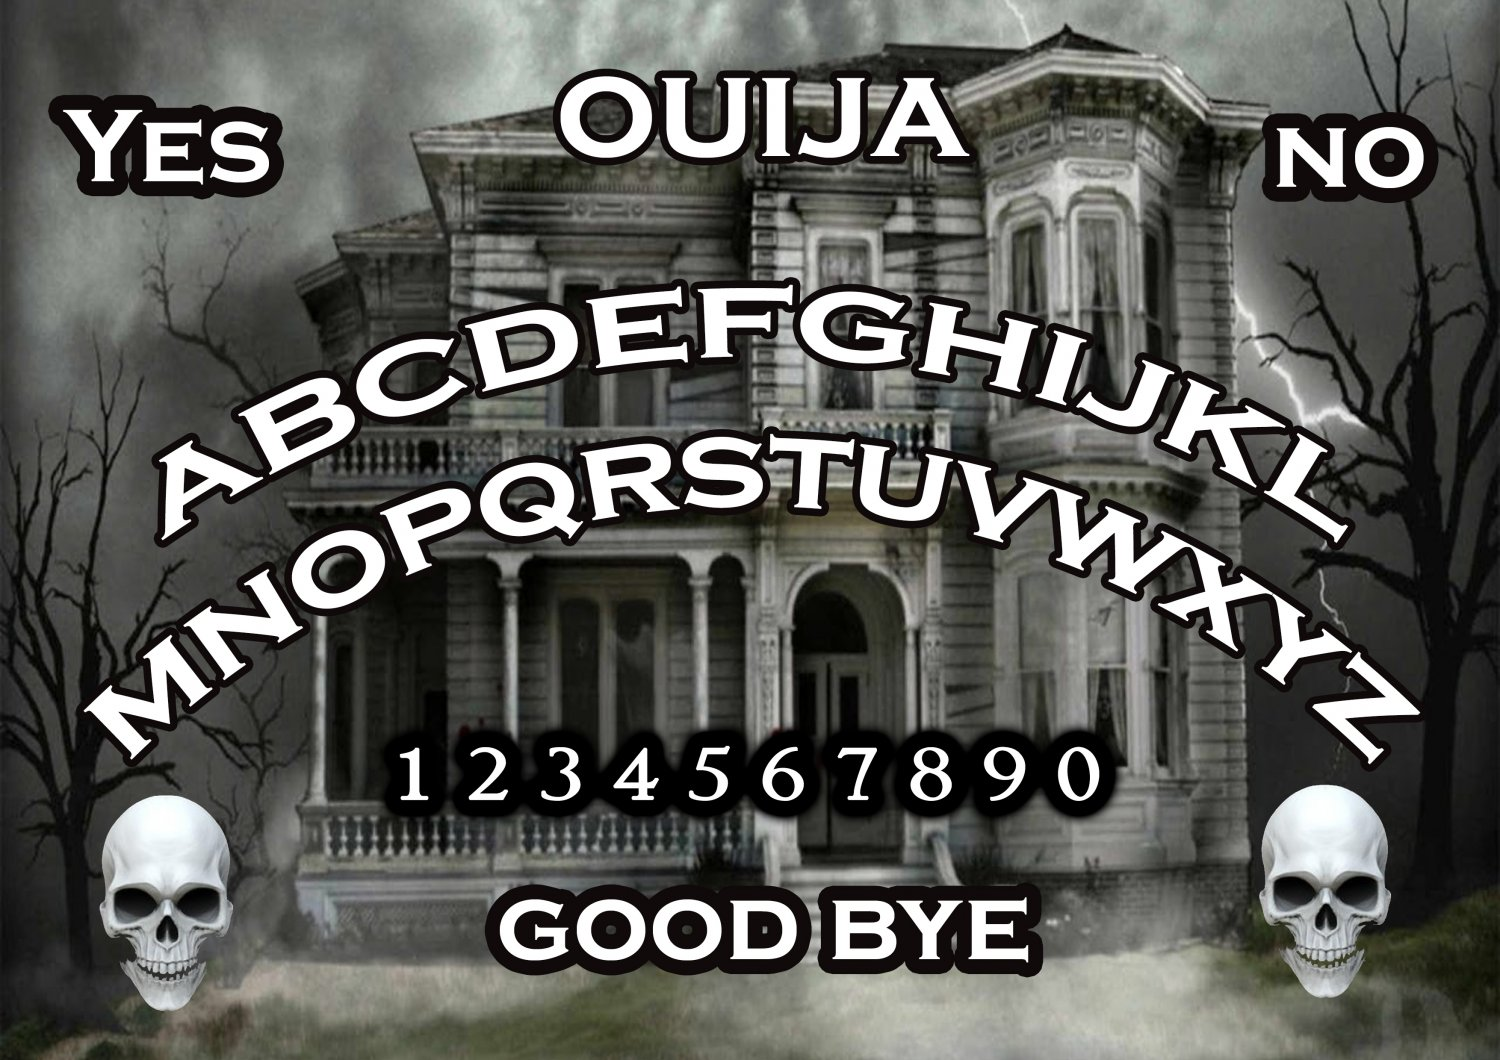 Spooky Haunted House A4 Laminated Ouija Board / Poster print   Ghost Hunting   EVP   Seances V.2